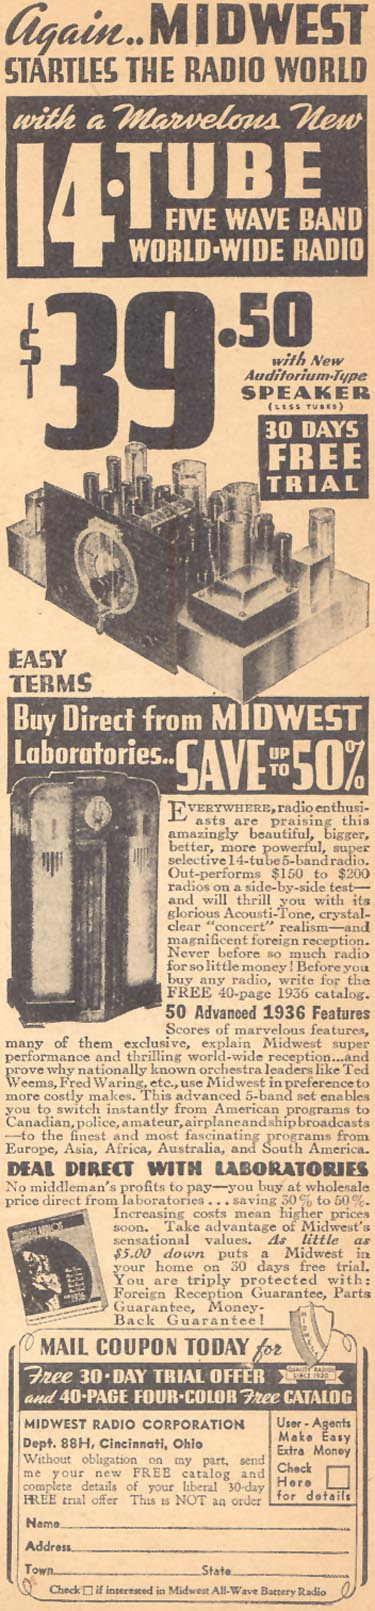 MIDWEST 14-TUBE FIVE WAVE BAND WORLD-WIDE RADIO LIBERTY 02/15/1936 p. 39